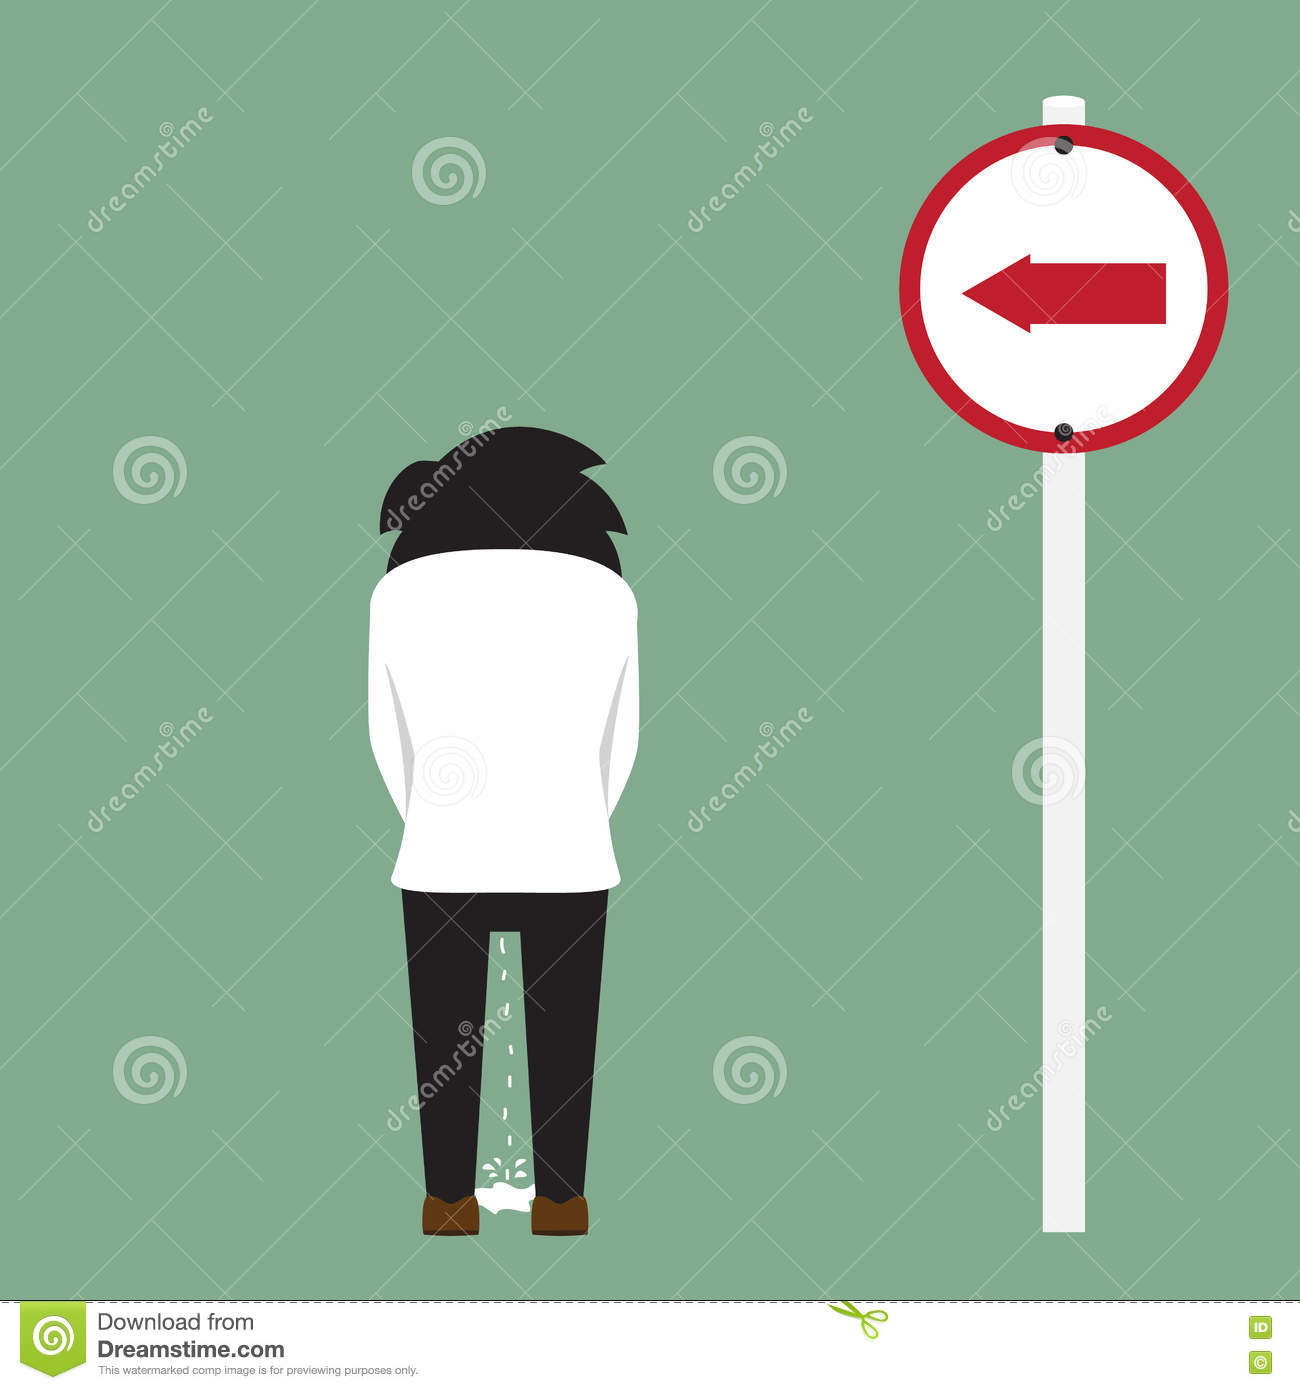 Peeing Cartoons, Illustrations & Vector Stock Images